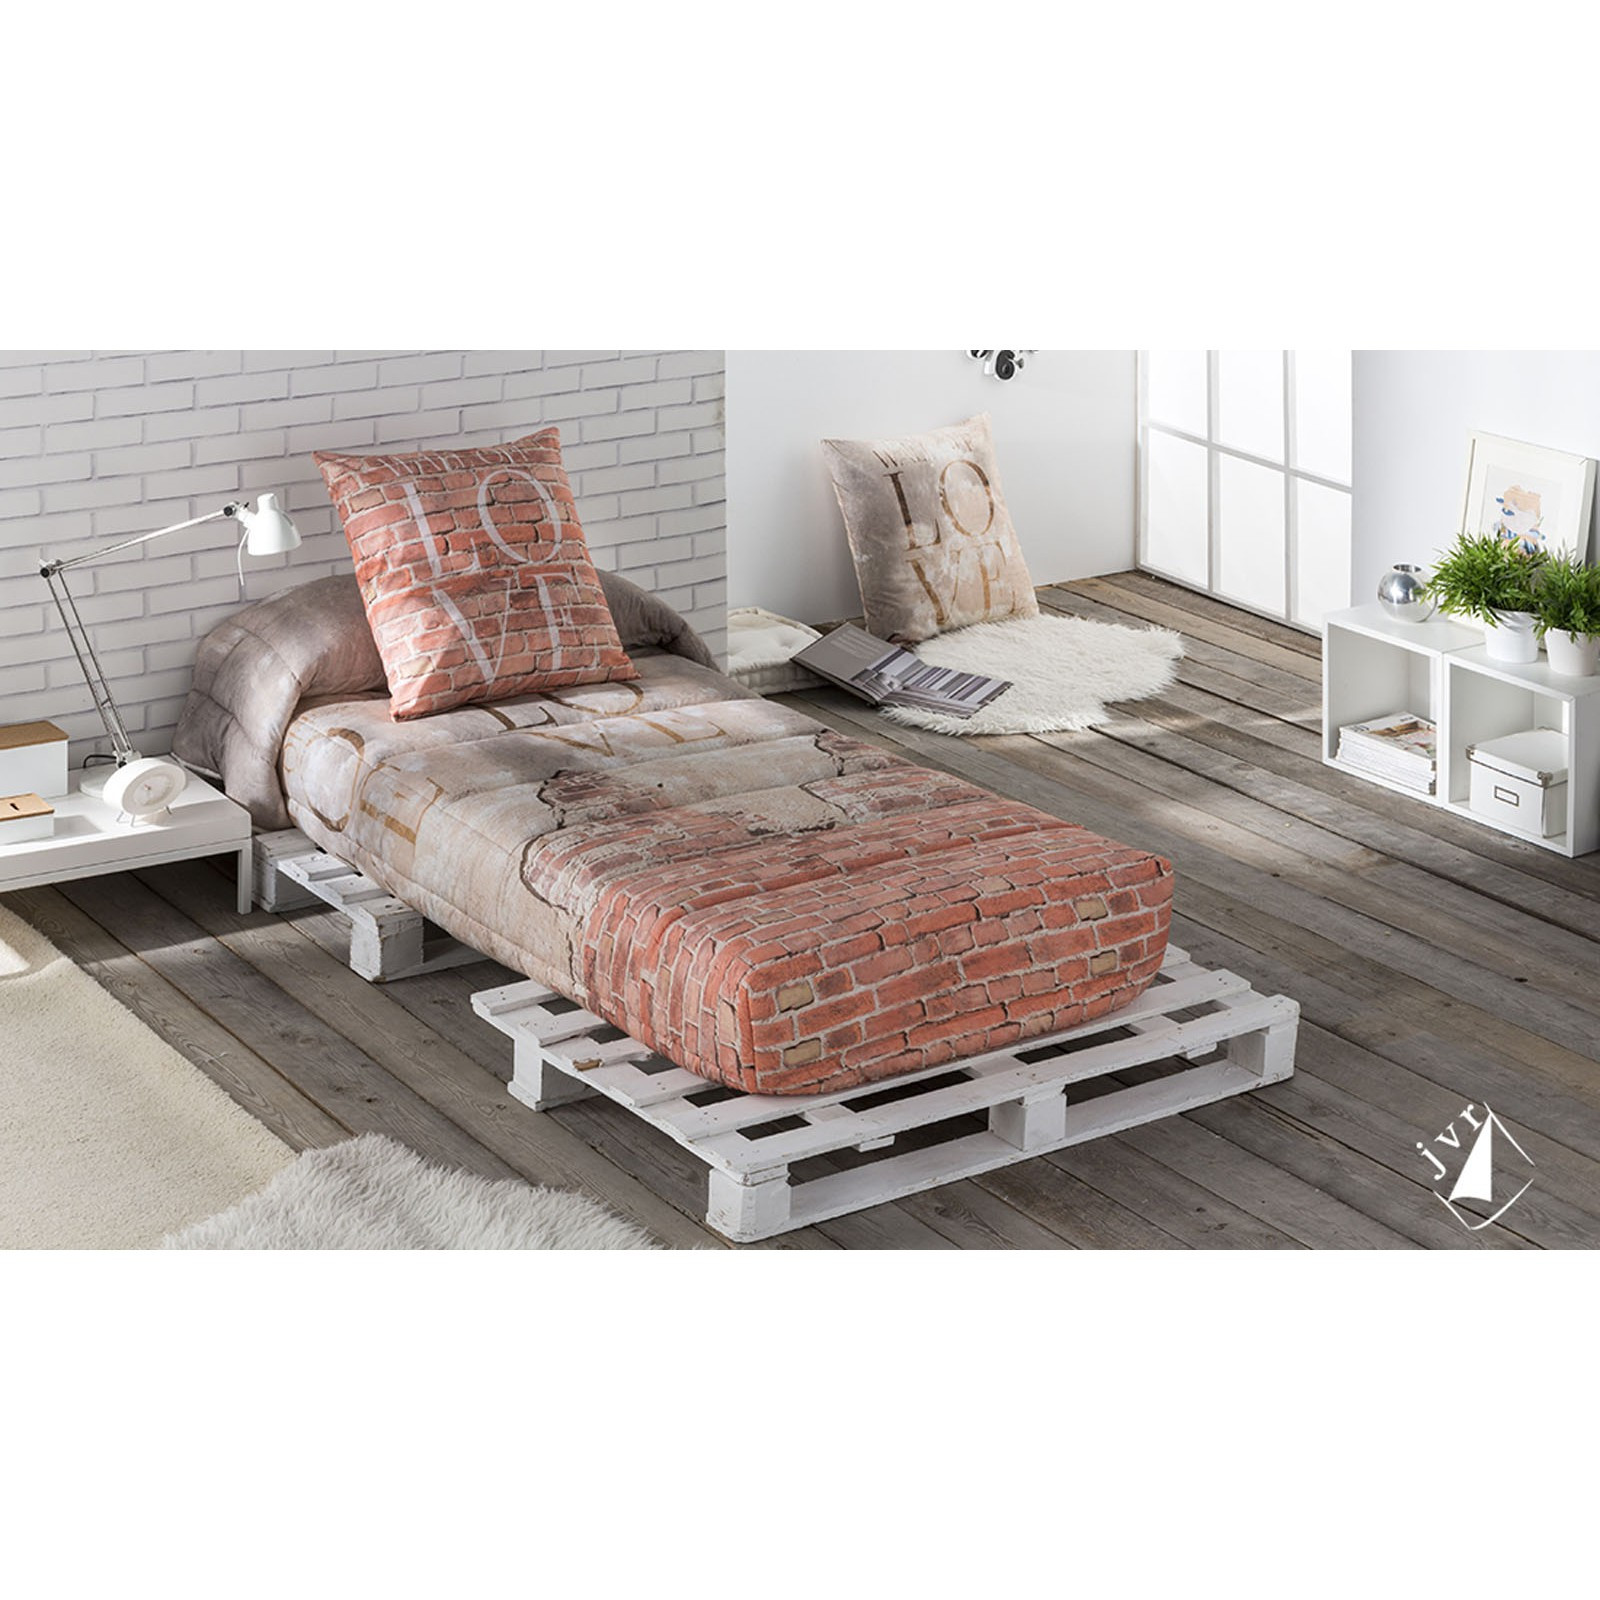 Edredon Ajustable Cama 90 Innovador EdredÓn Ajustable Wall Descatalogado Decorajoven Of Edredon Ajustable Cama 90 Contemporáneo Edredón Ajustable Patch Reig Marti